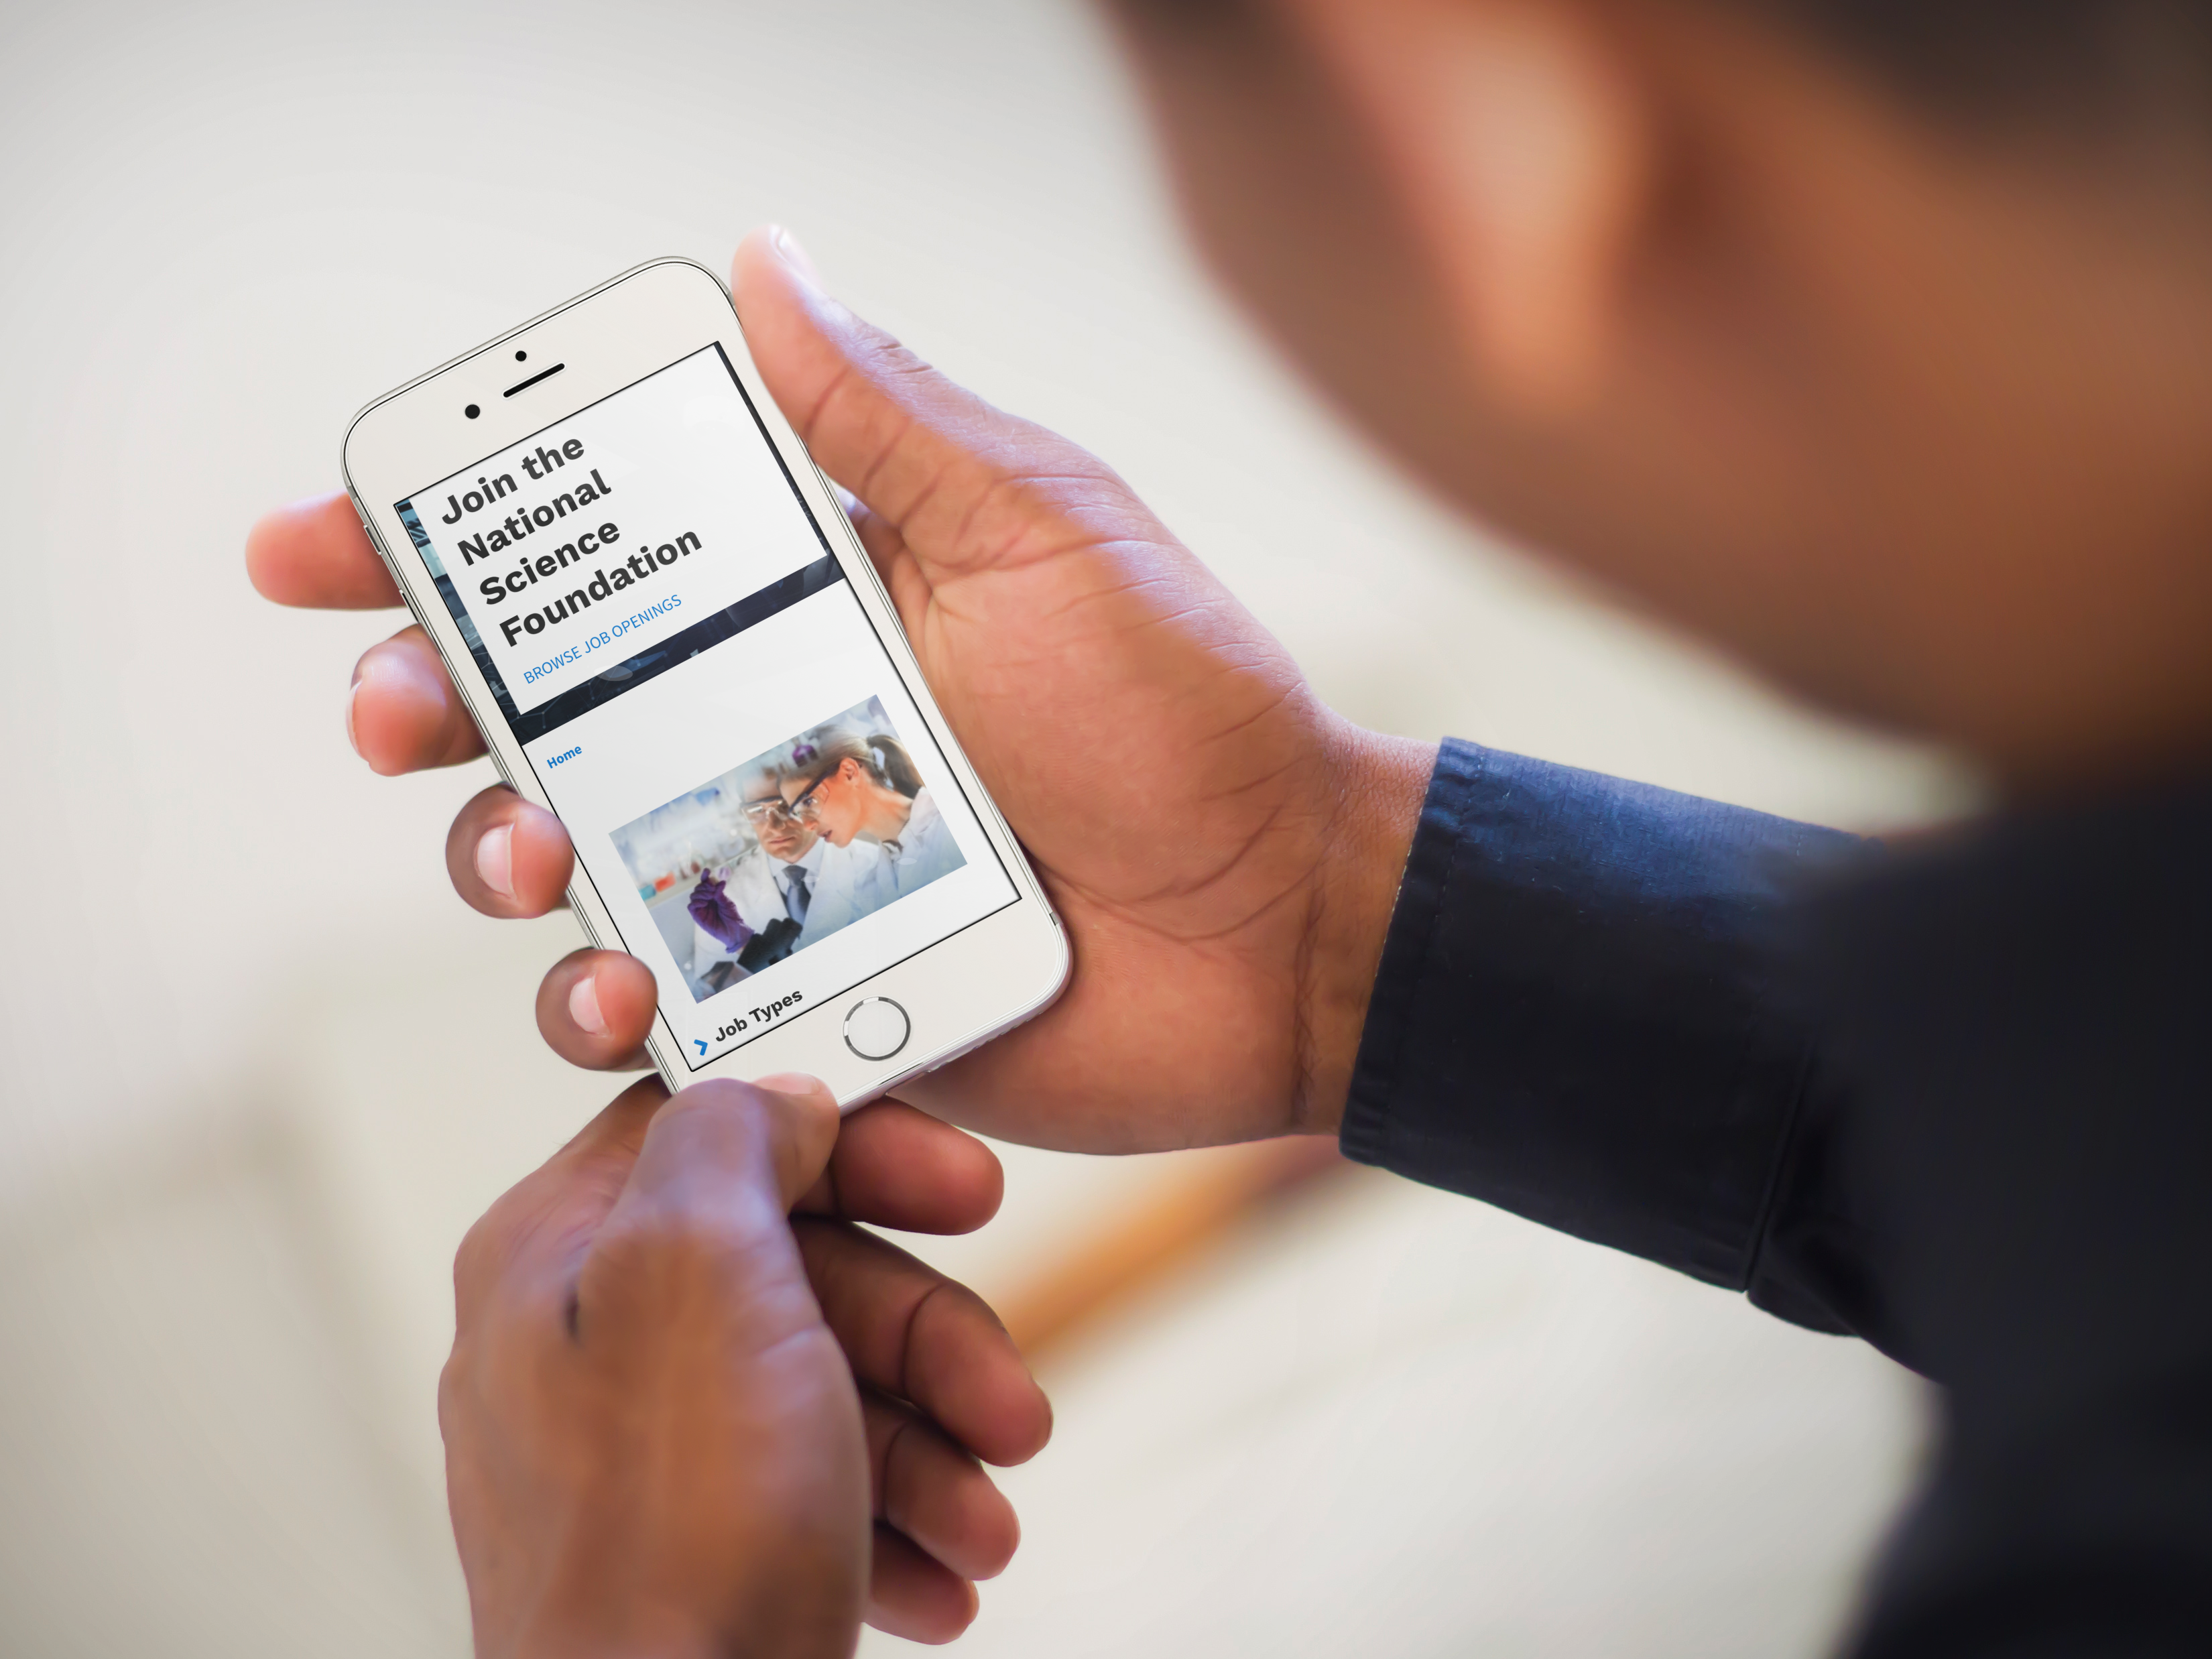 A person viewing NSF career opportunities on a mobile device.